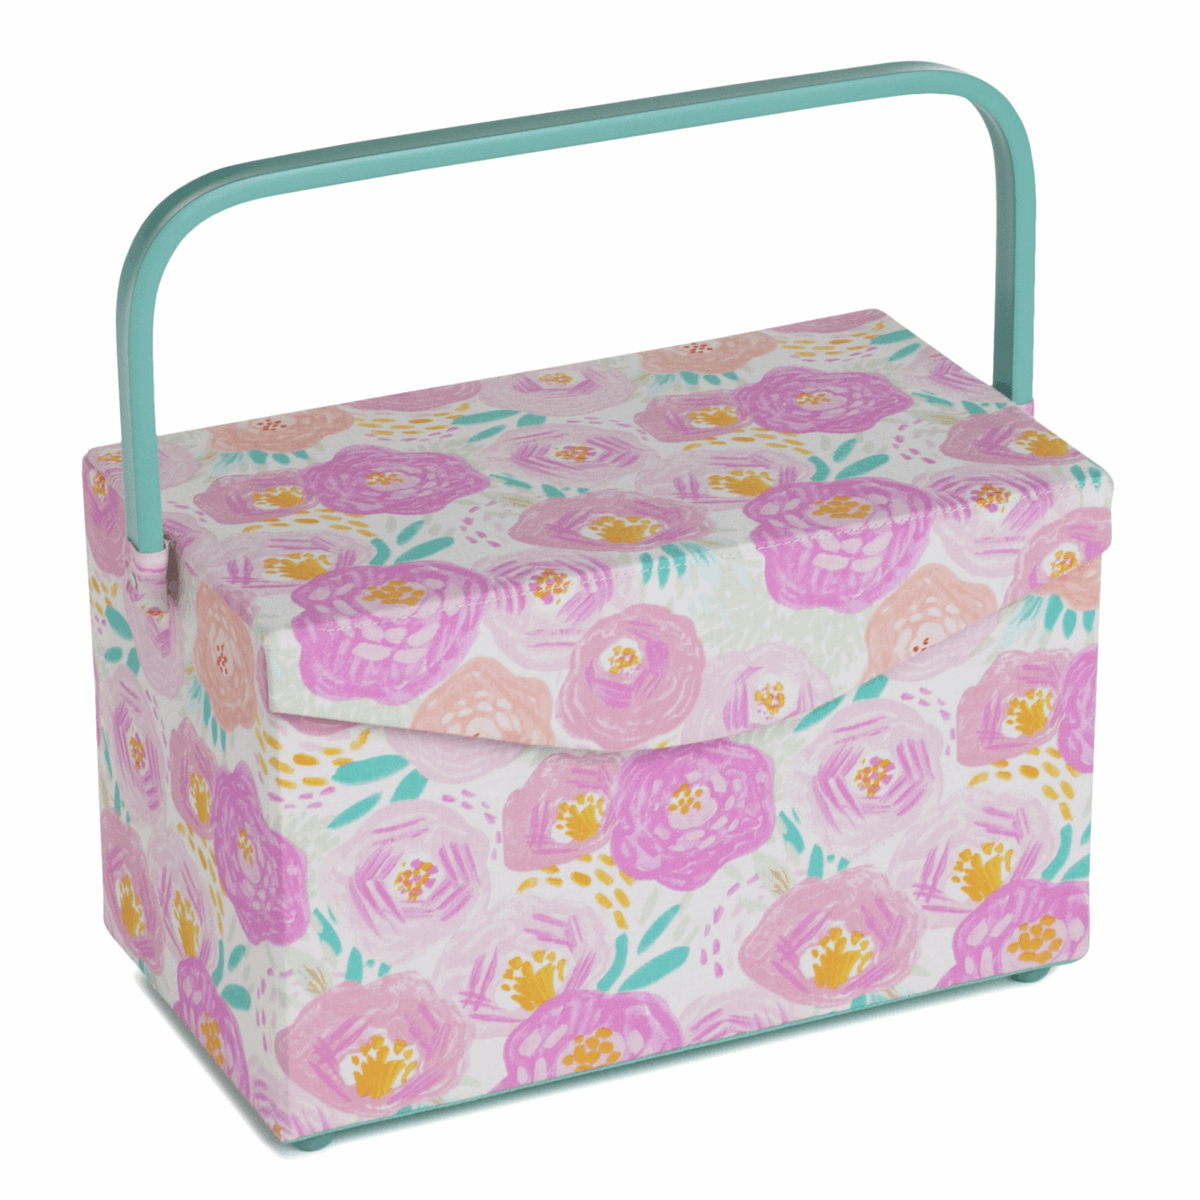 Sewing Box Fold Over Lid...